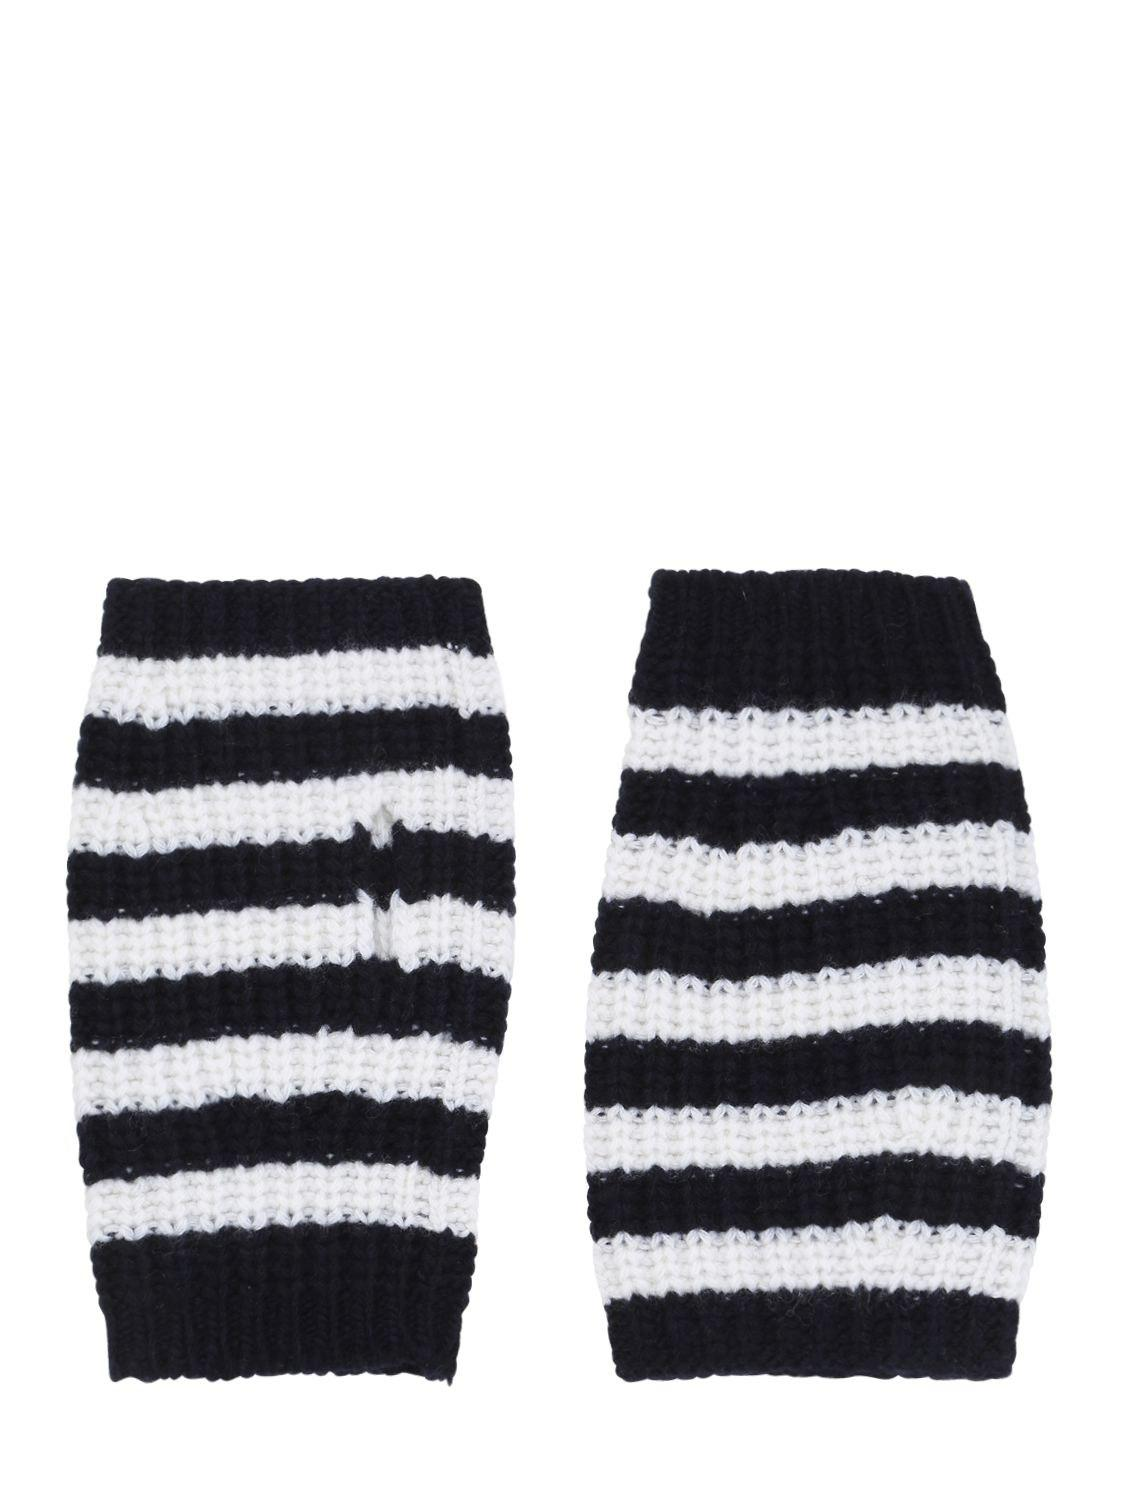 Lyst - Gucci Stripe Wool Cable Knit Fingerless Gloves in White for Men